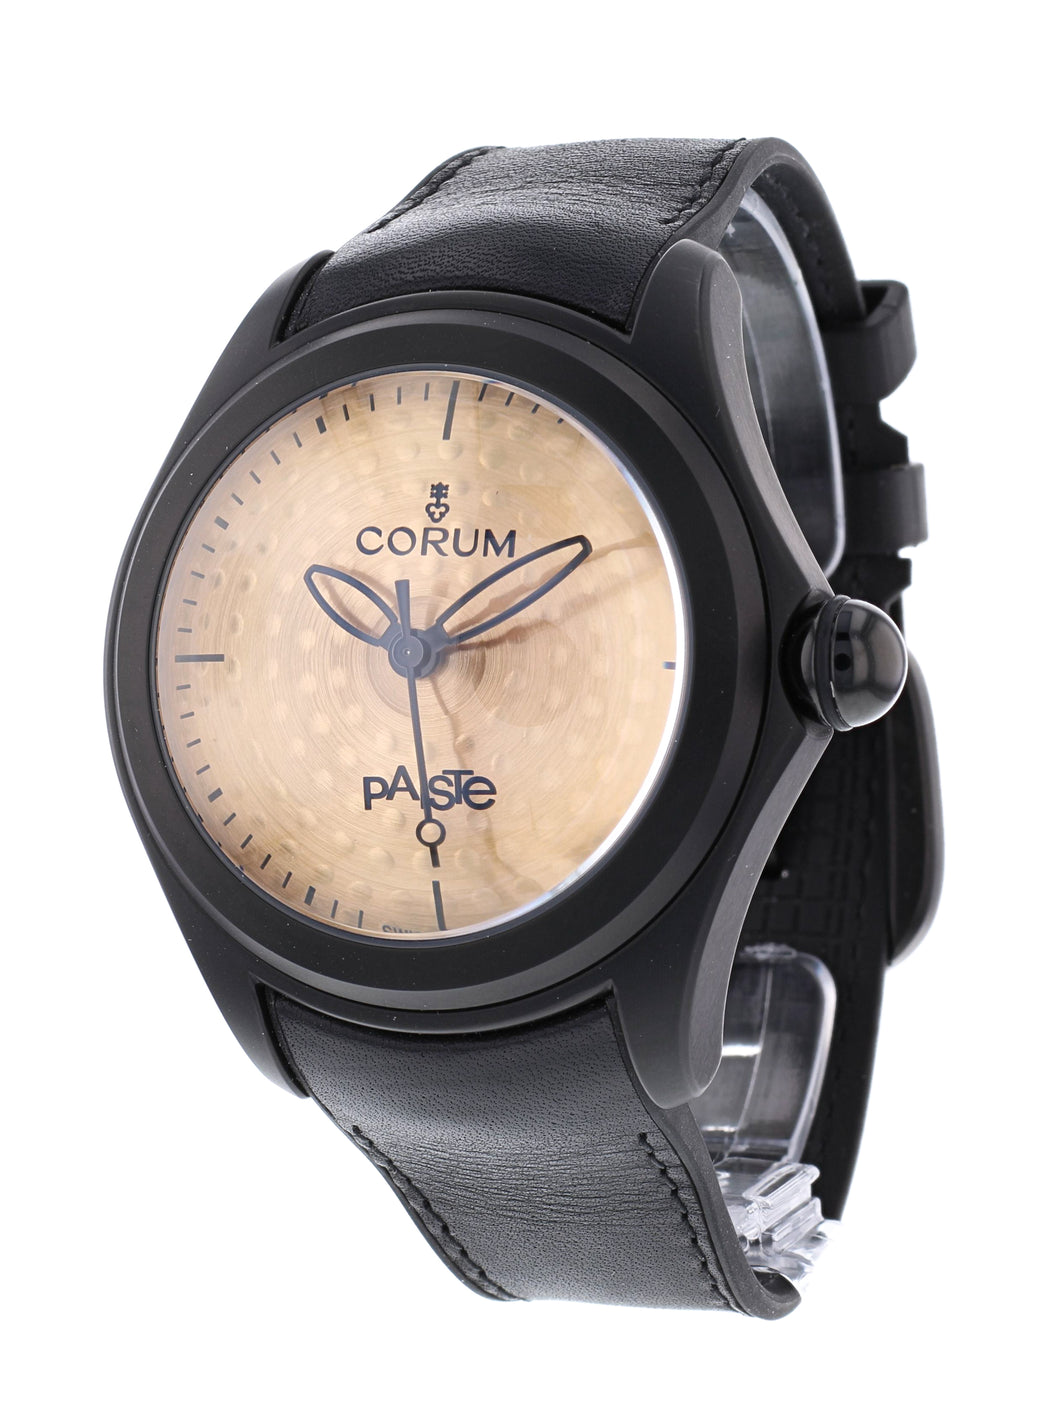 Corum Bubble Paiste Bronze Drum Cymbal Dial Men's 47mm Limited Edition Watch